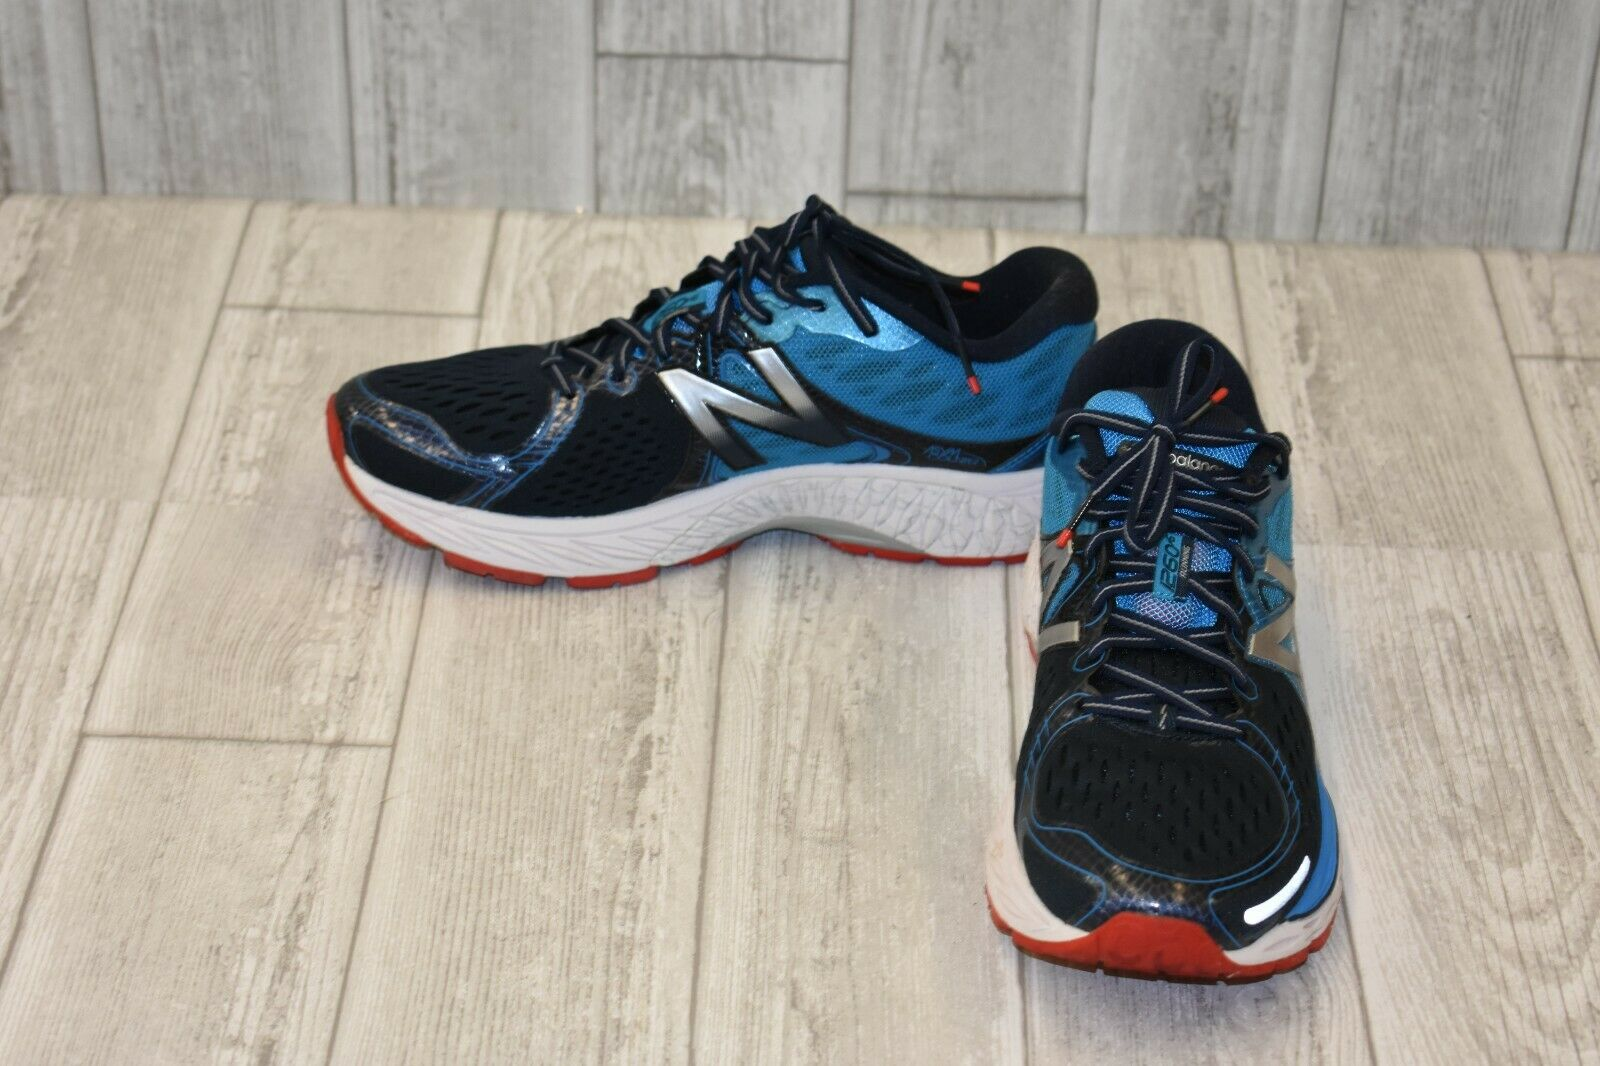 New Balance Stability 1260v6 Running shoes - Men's Size 8D, bluee